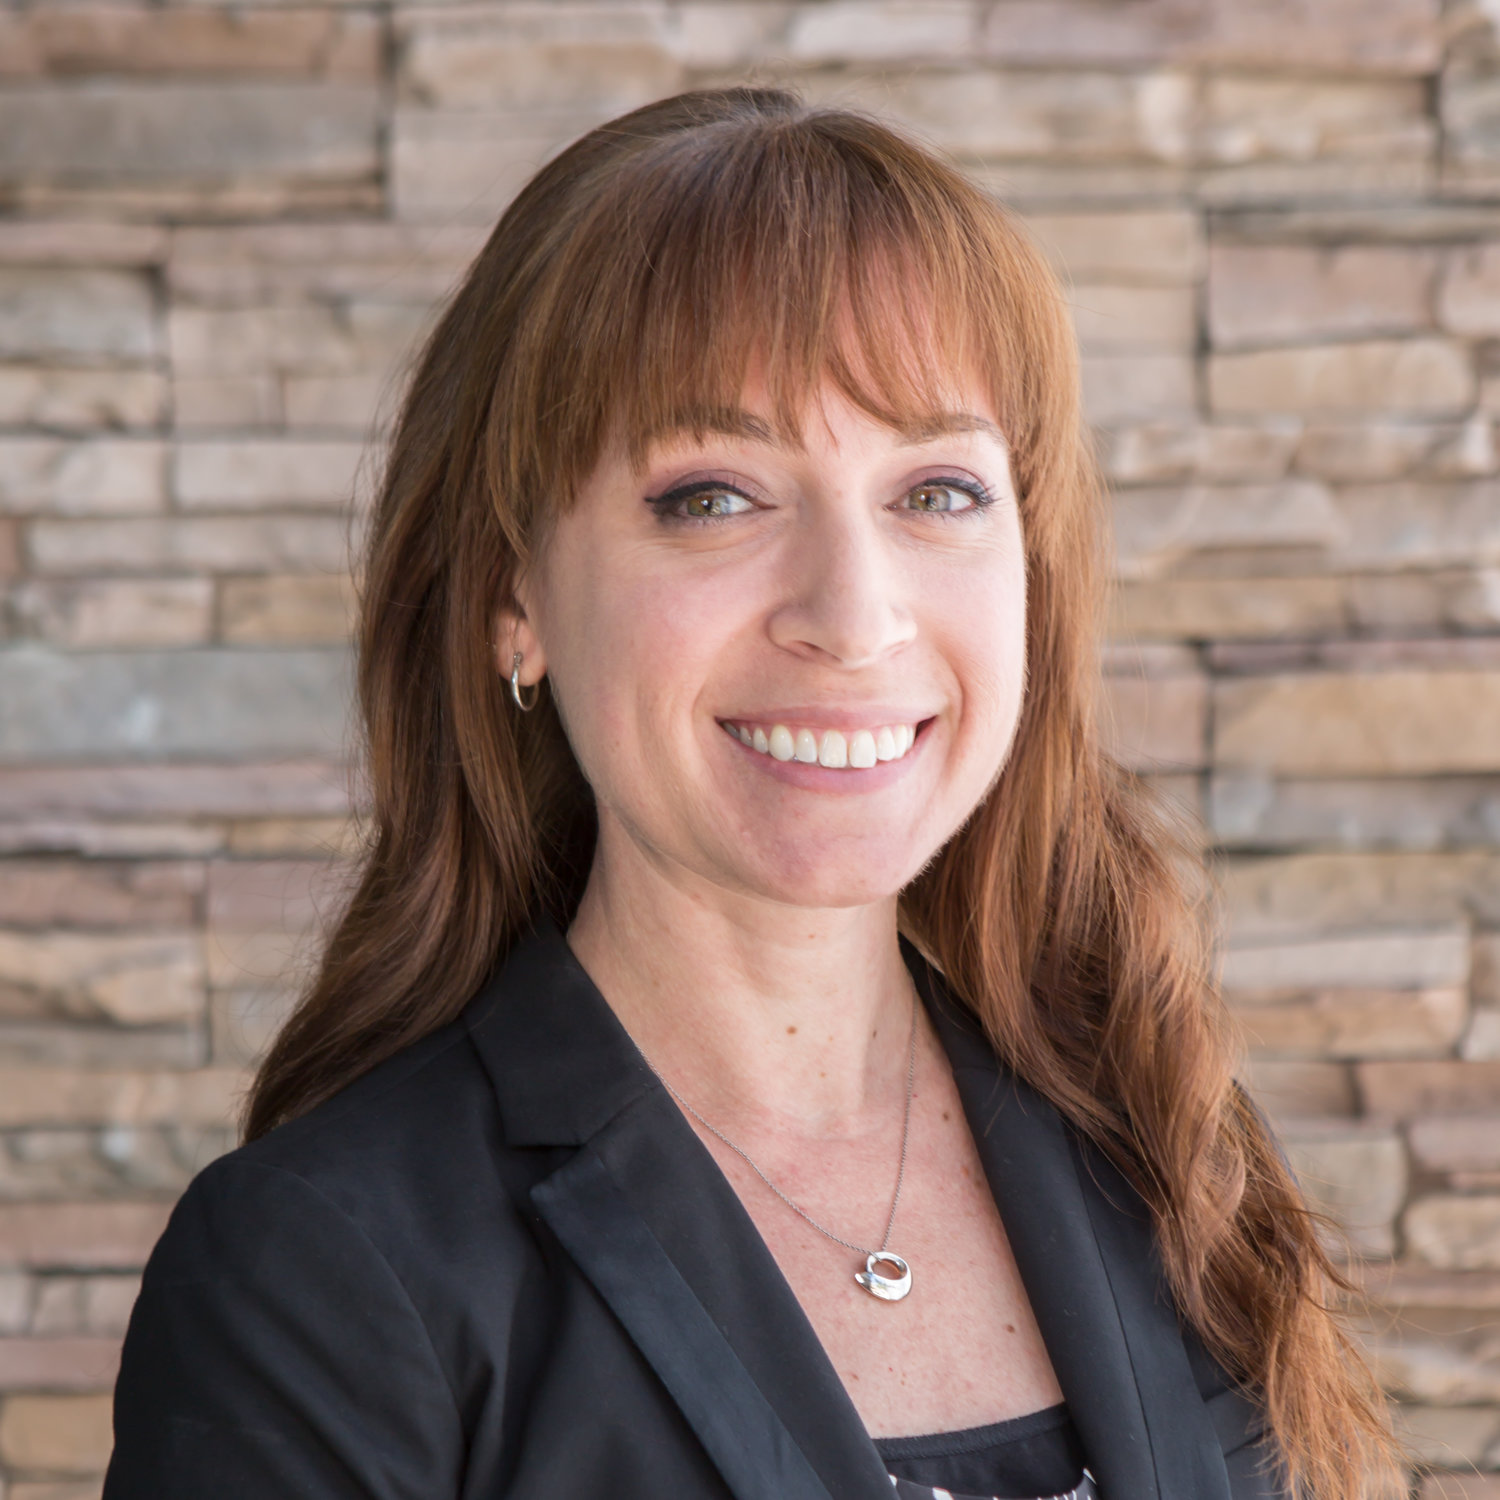 Theresa Allen - Chief Operating Officer (COO)Overseeing the company's day-to-day operations, daily communication with the CEO, creating operations strategies and policies.